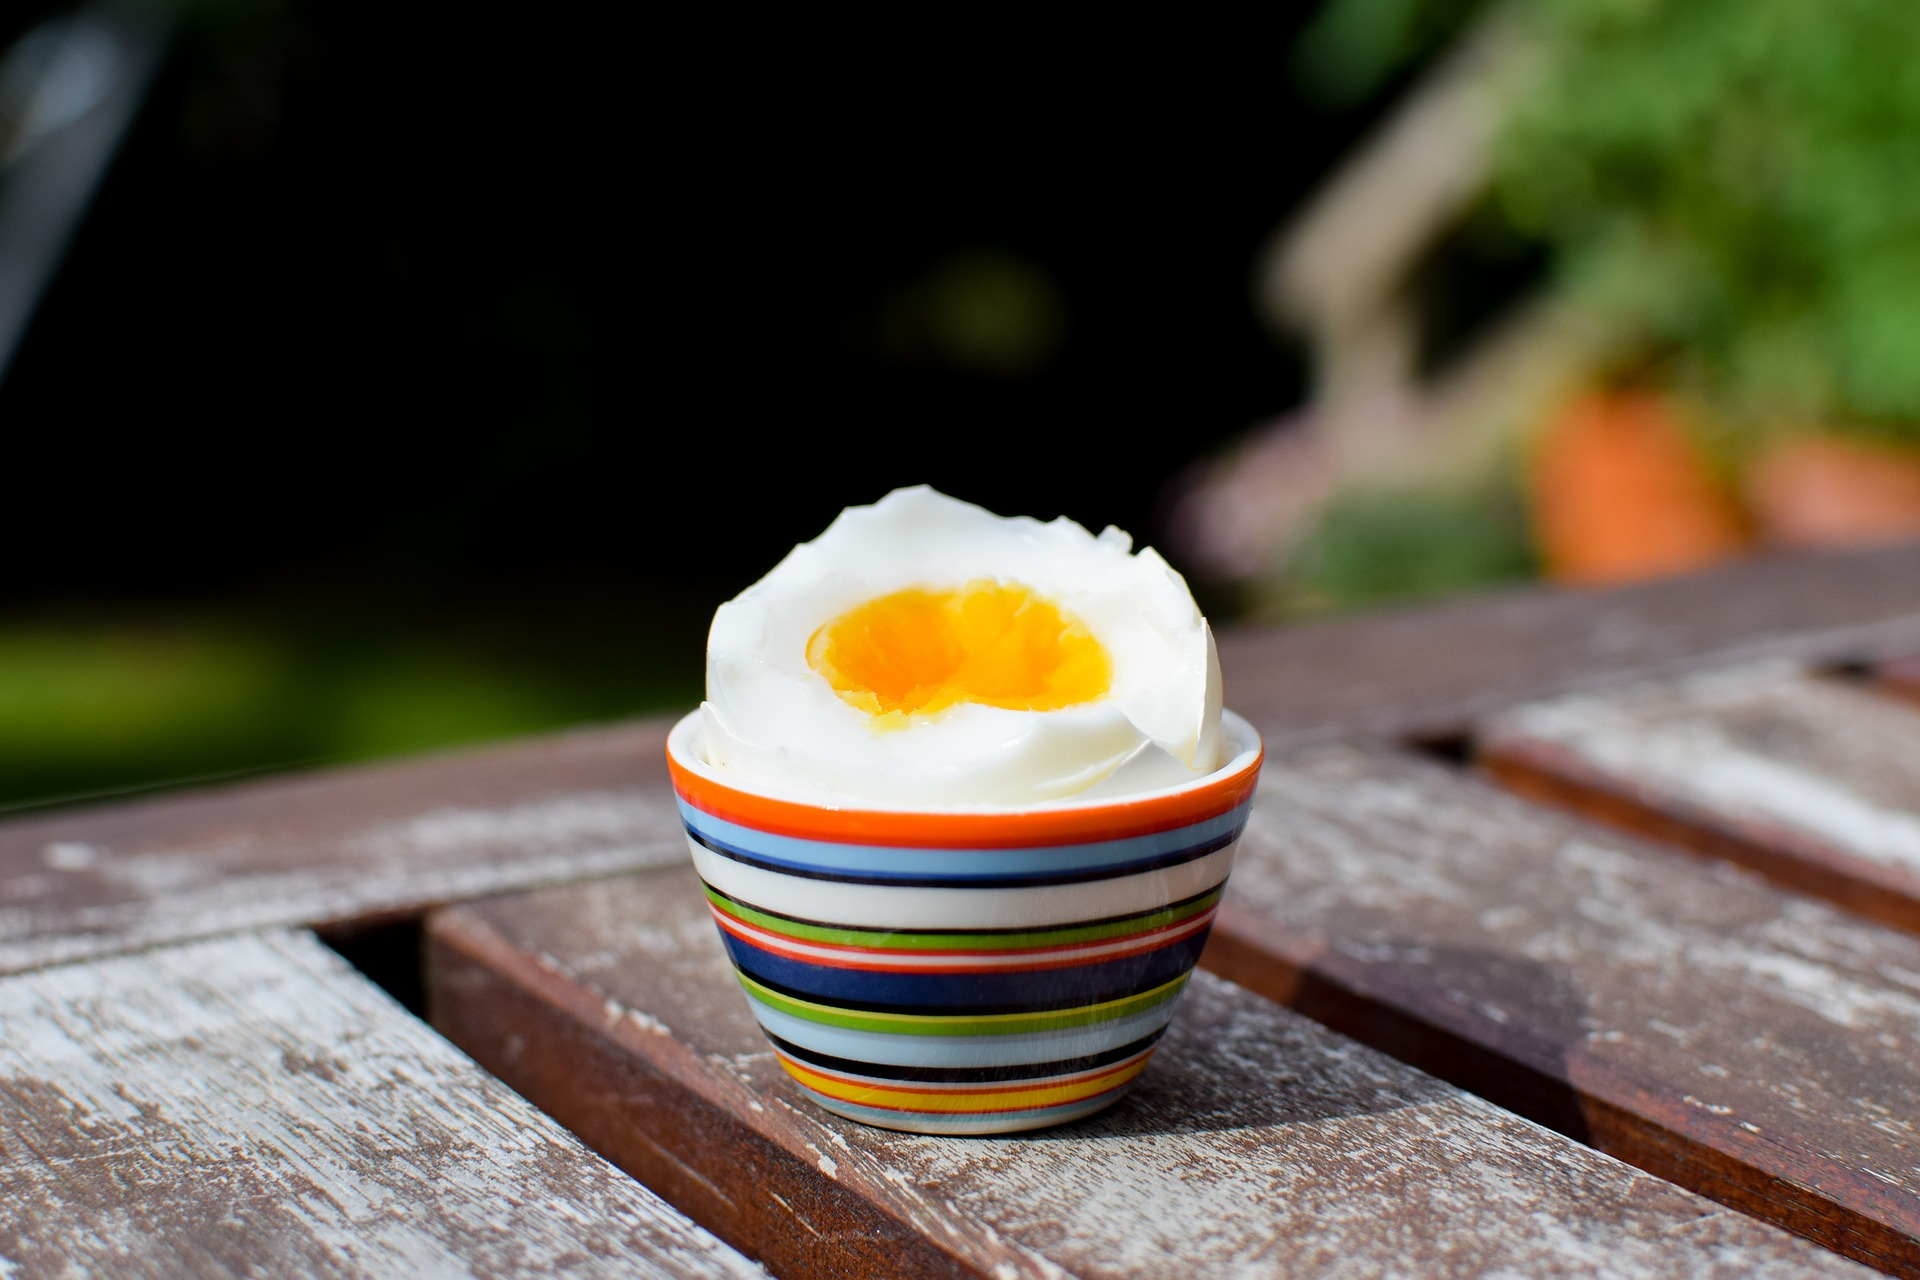 Get Set For Summer With These Healthy Eggy Ideas